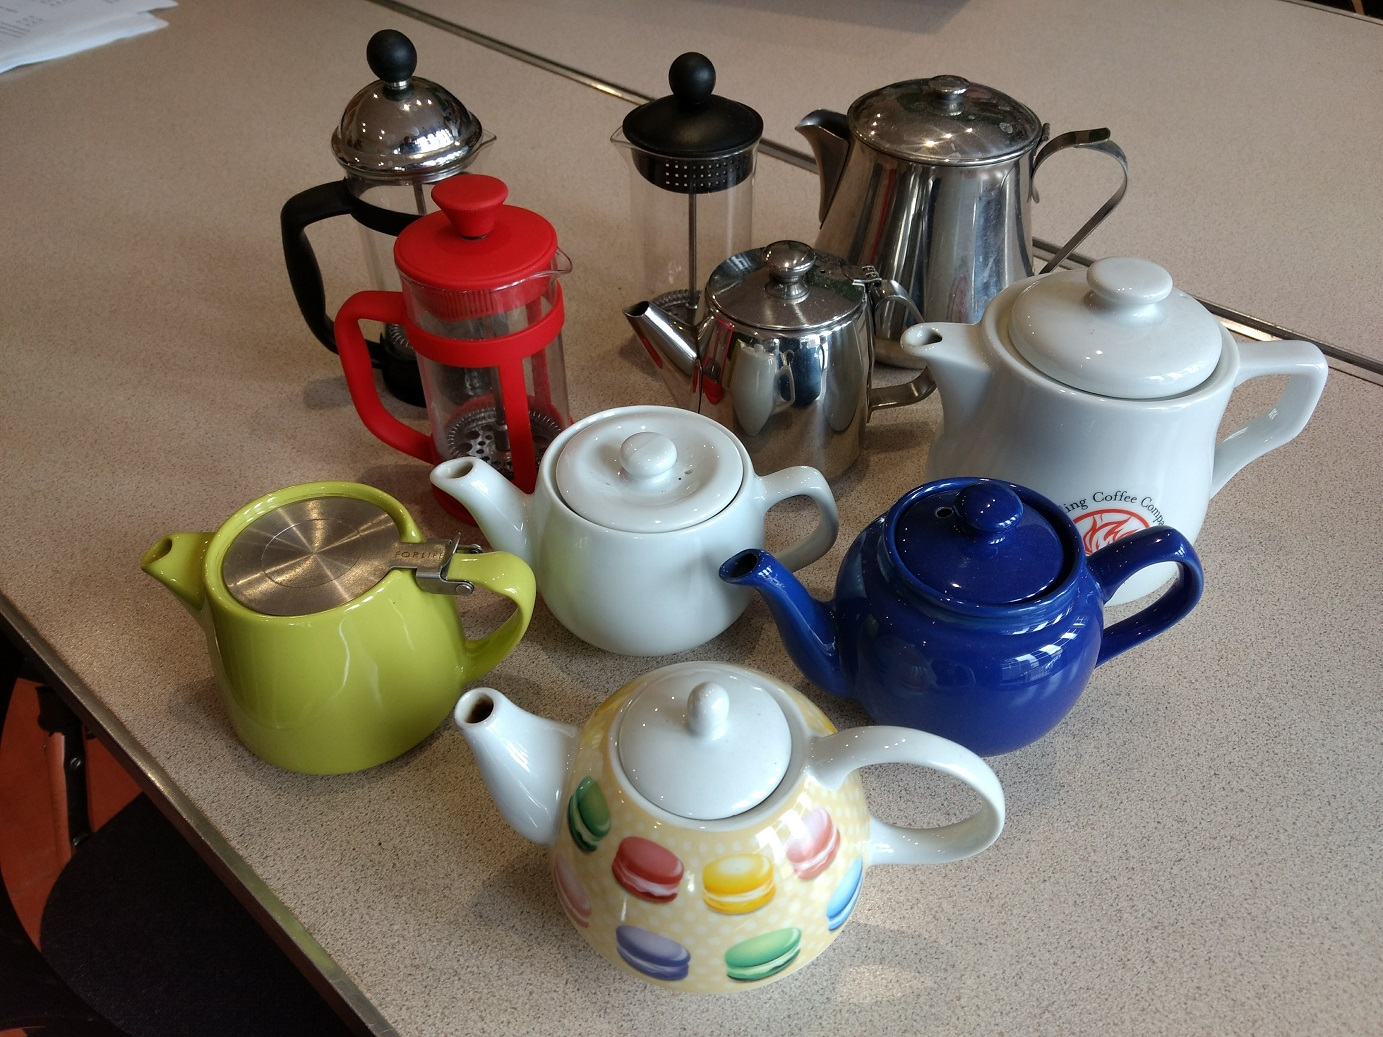 Tea and coffee pots